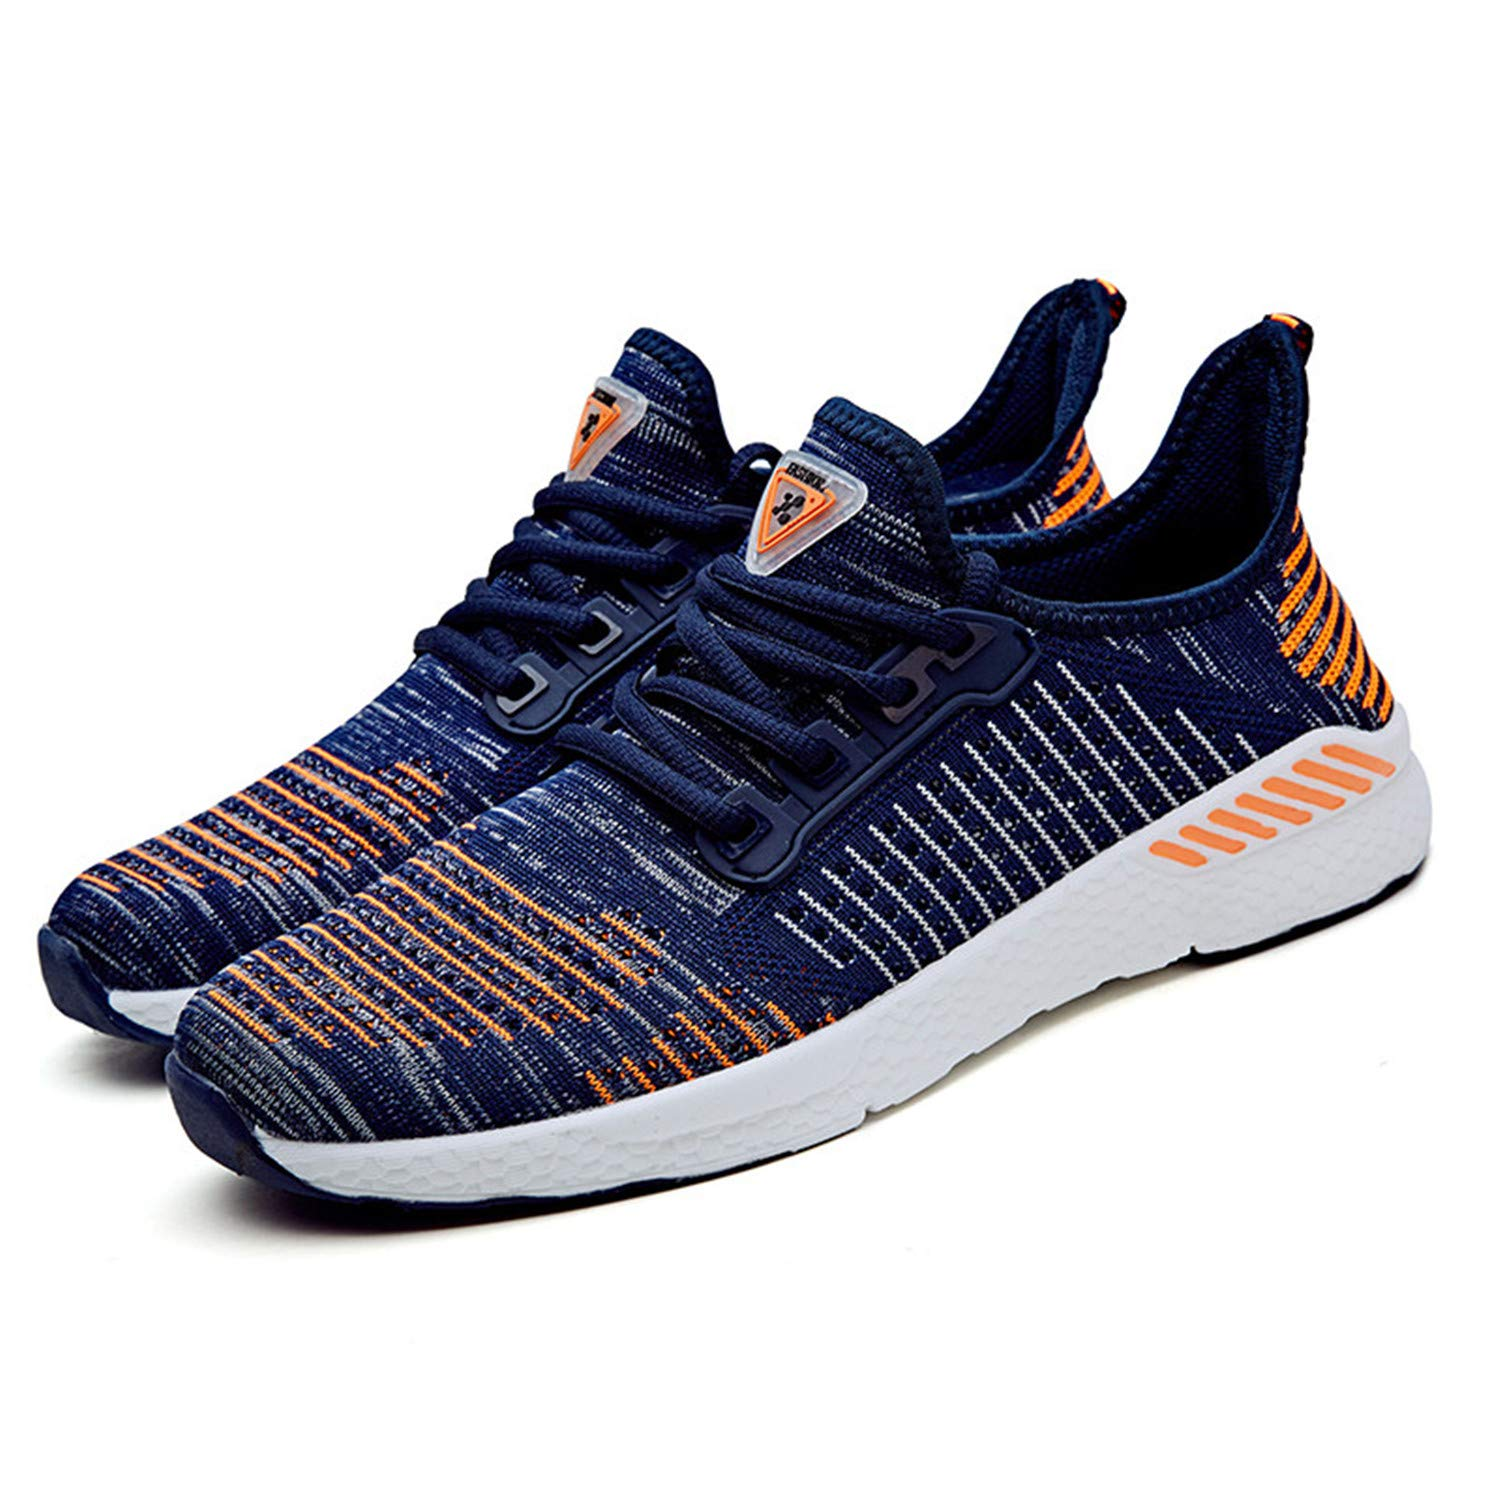 Light New Air Mesh Running Shoes for Men Sneakers Outdoor Breathable Comfortable Athletic Flat Shoes Women SPOR